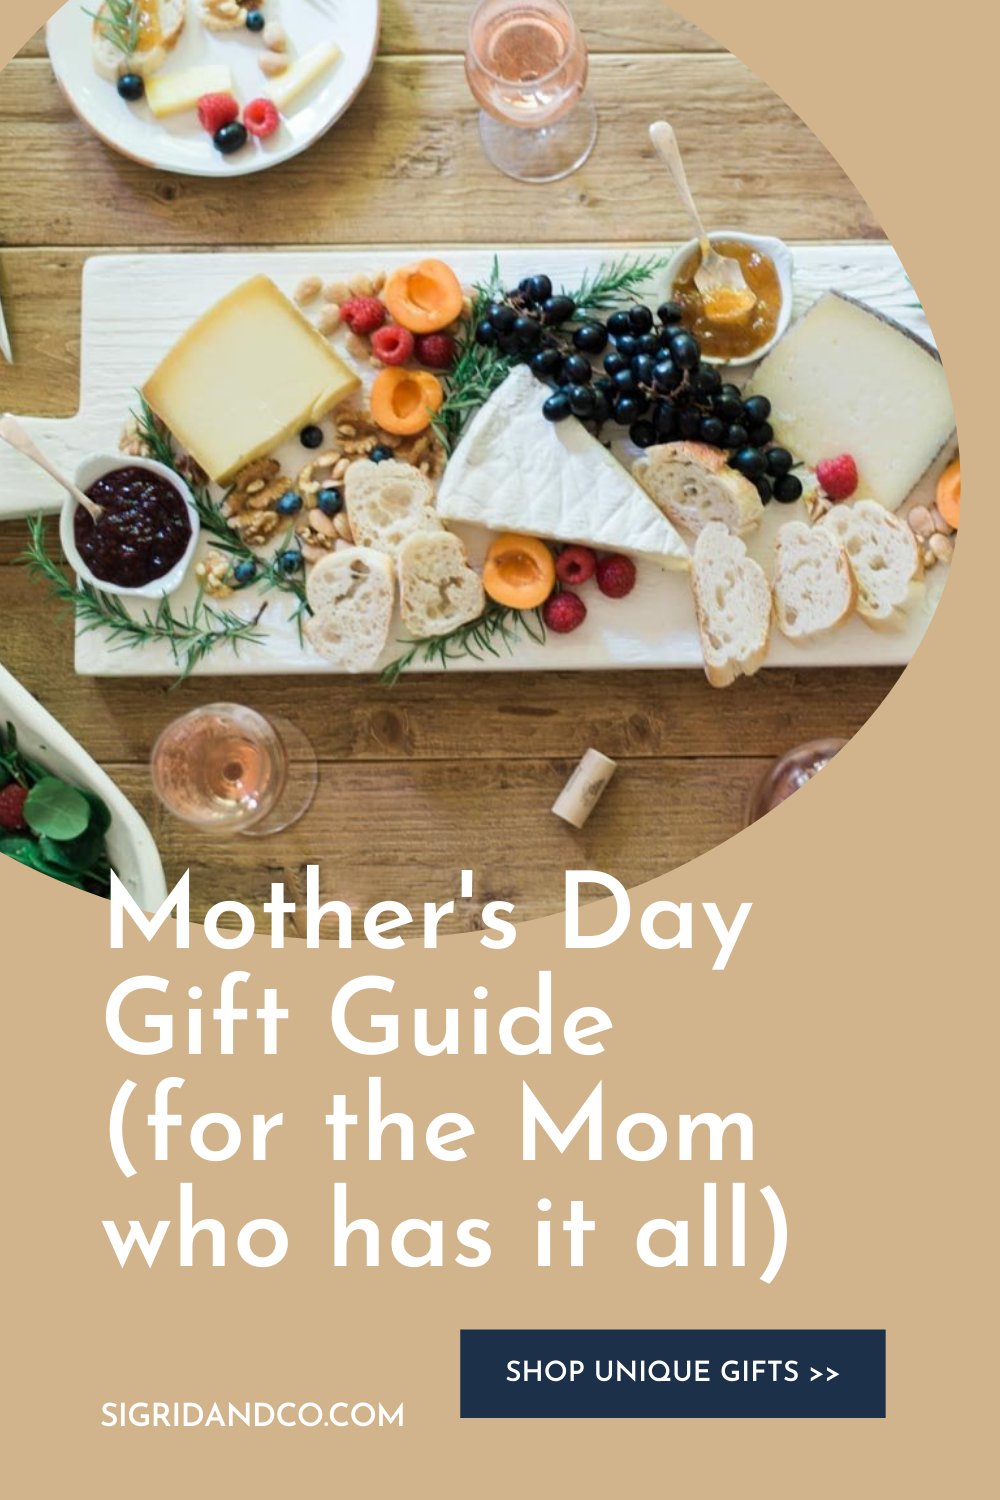 Mother's Day Gift Guide (for the Mom who has it all)